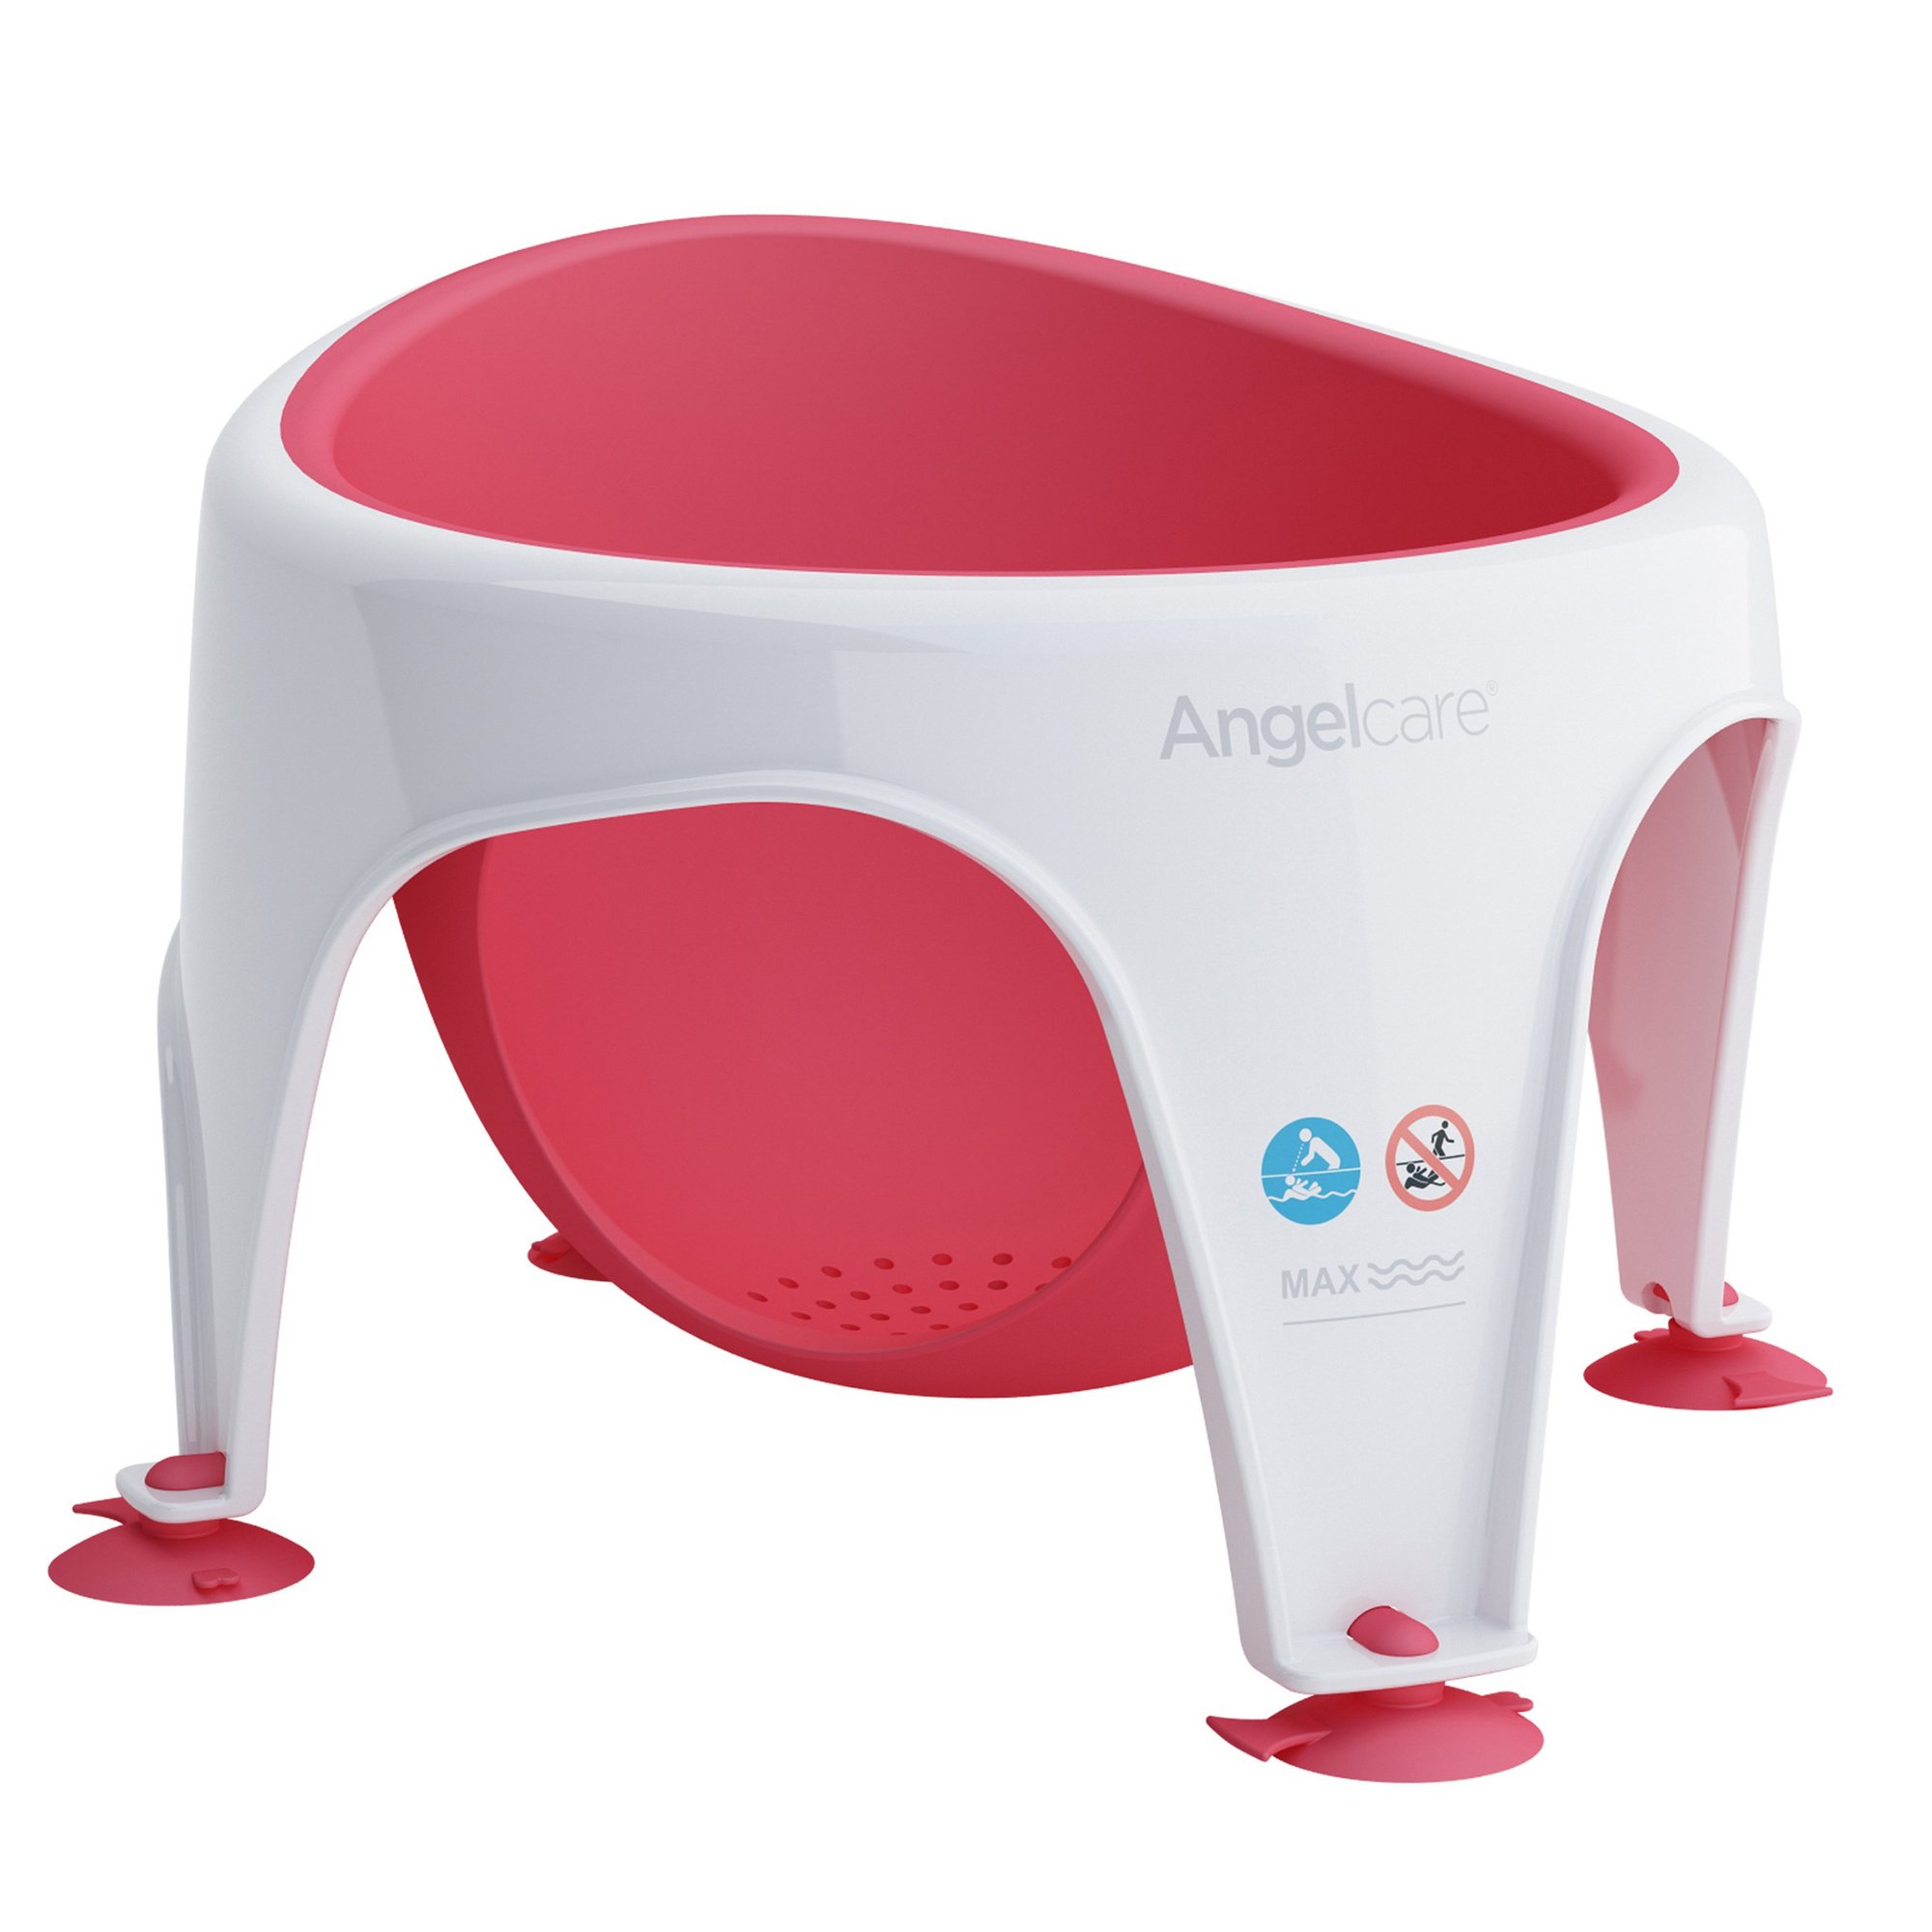 Image of Angelcare Soft Touch Baby Bath Seat